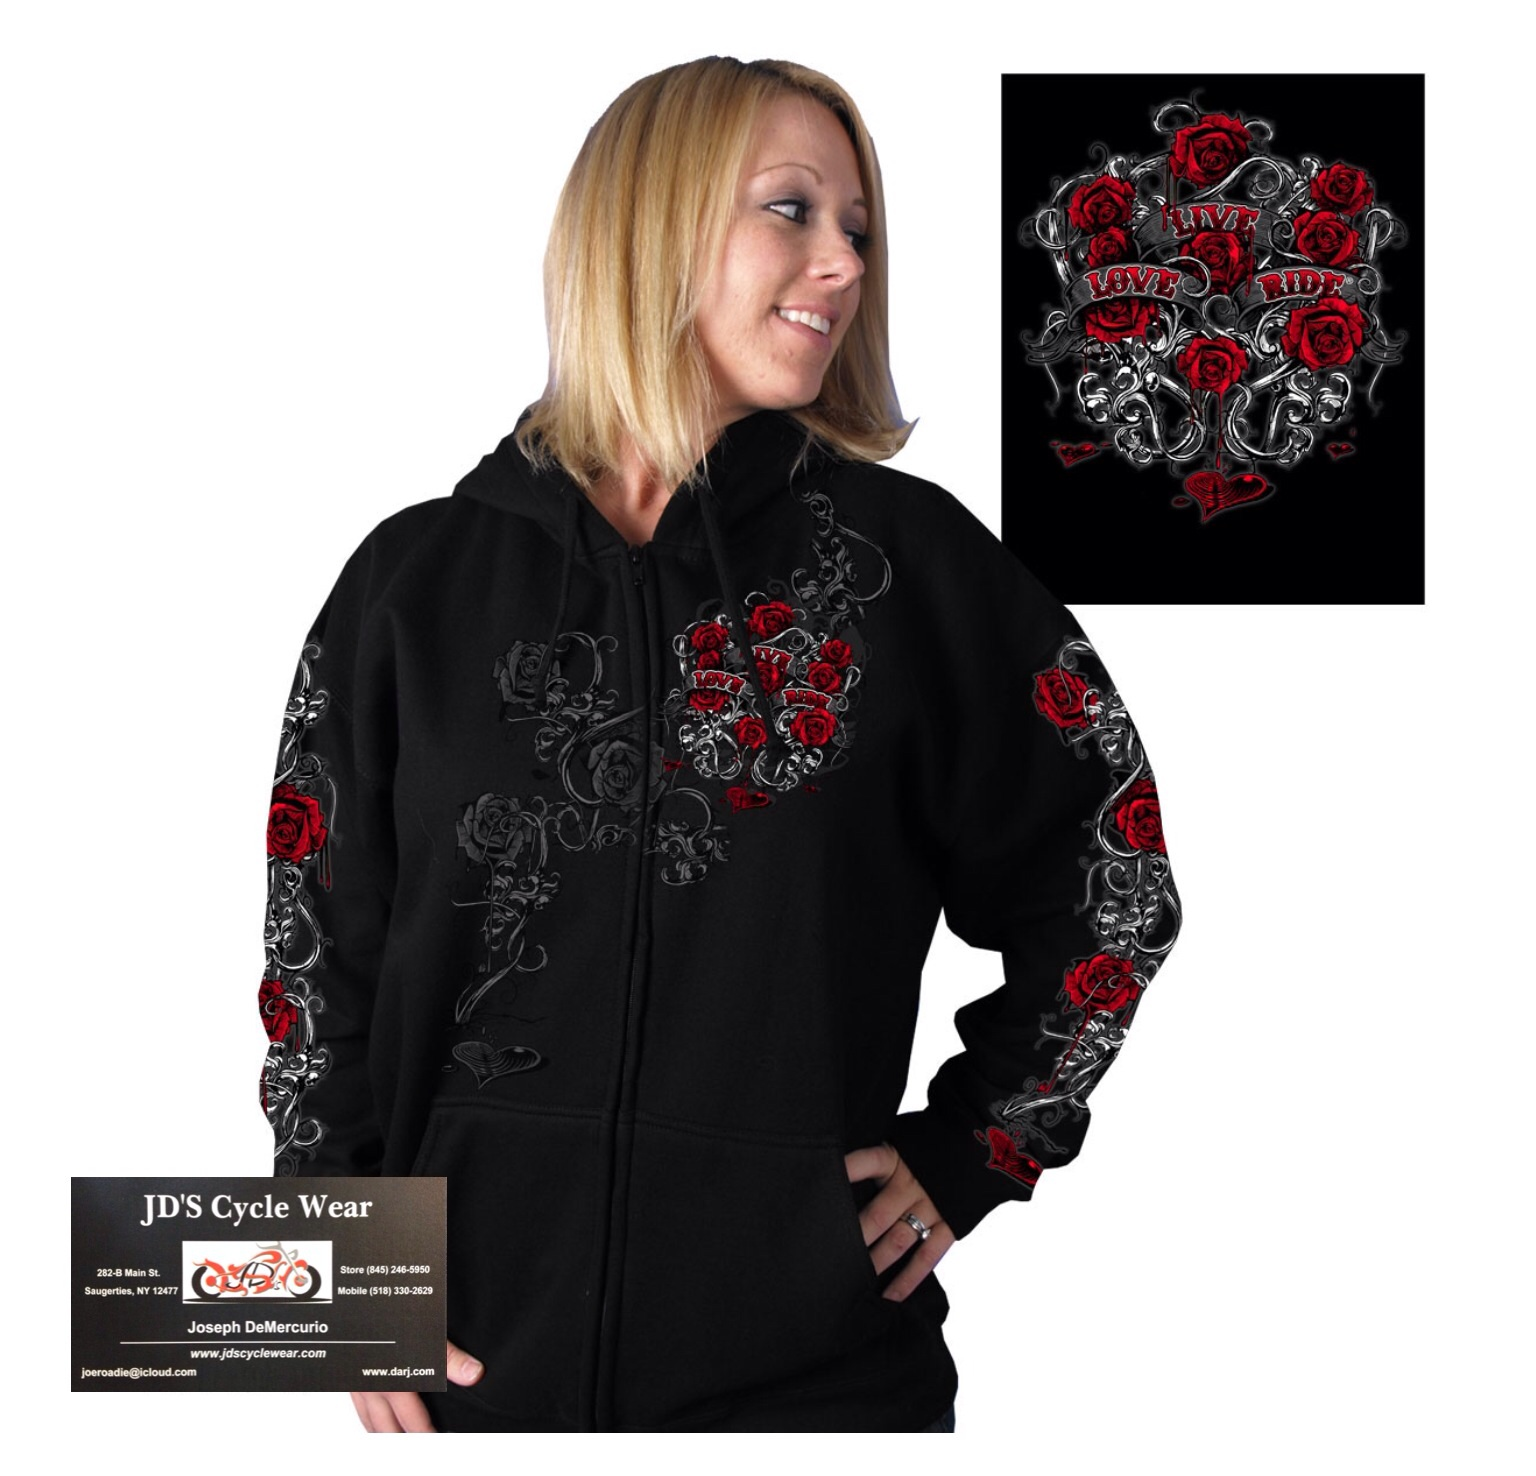 Womens Hooded zip-up Sweatshirt with Live, Love, Ride and Roses